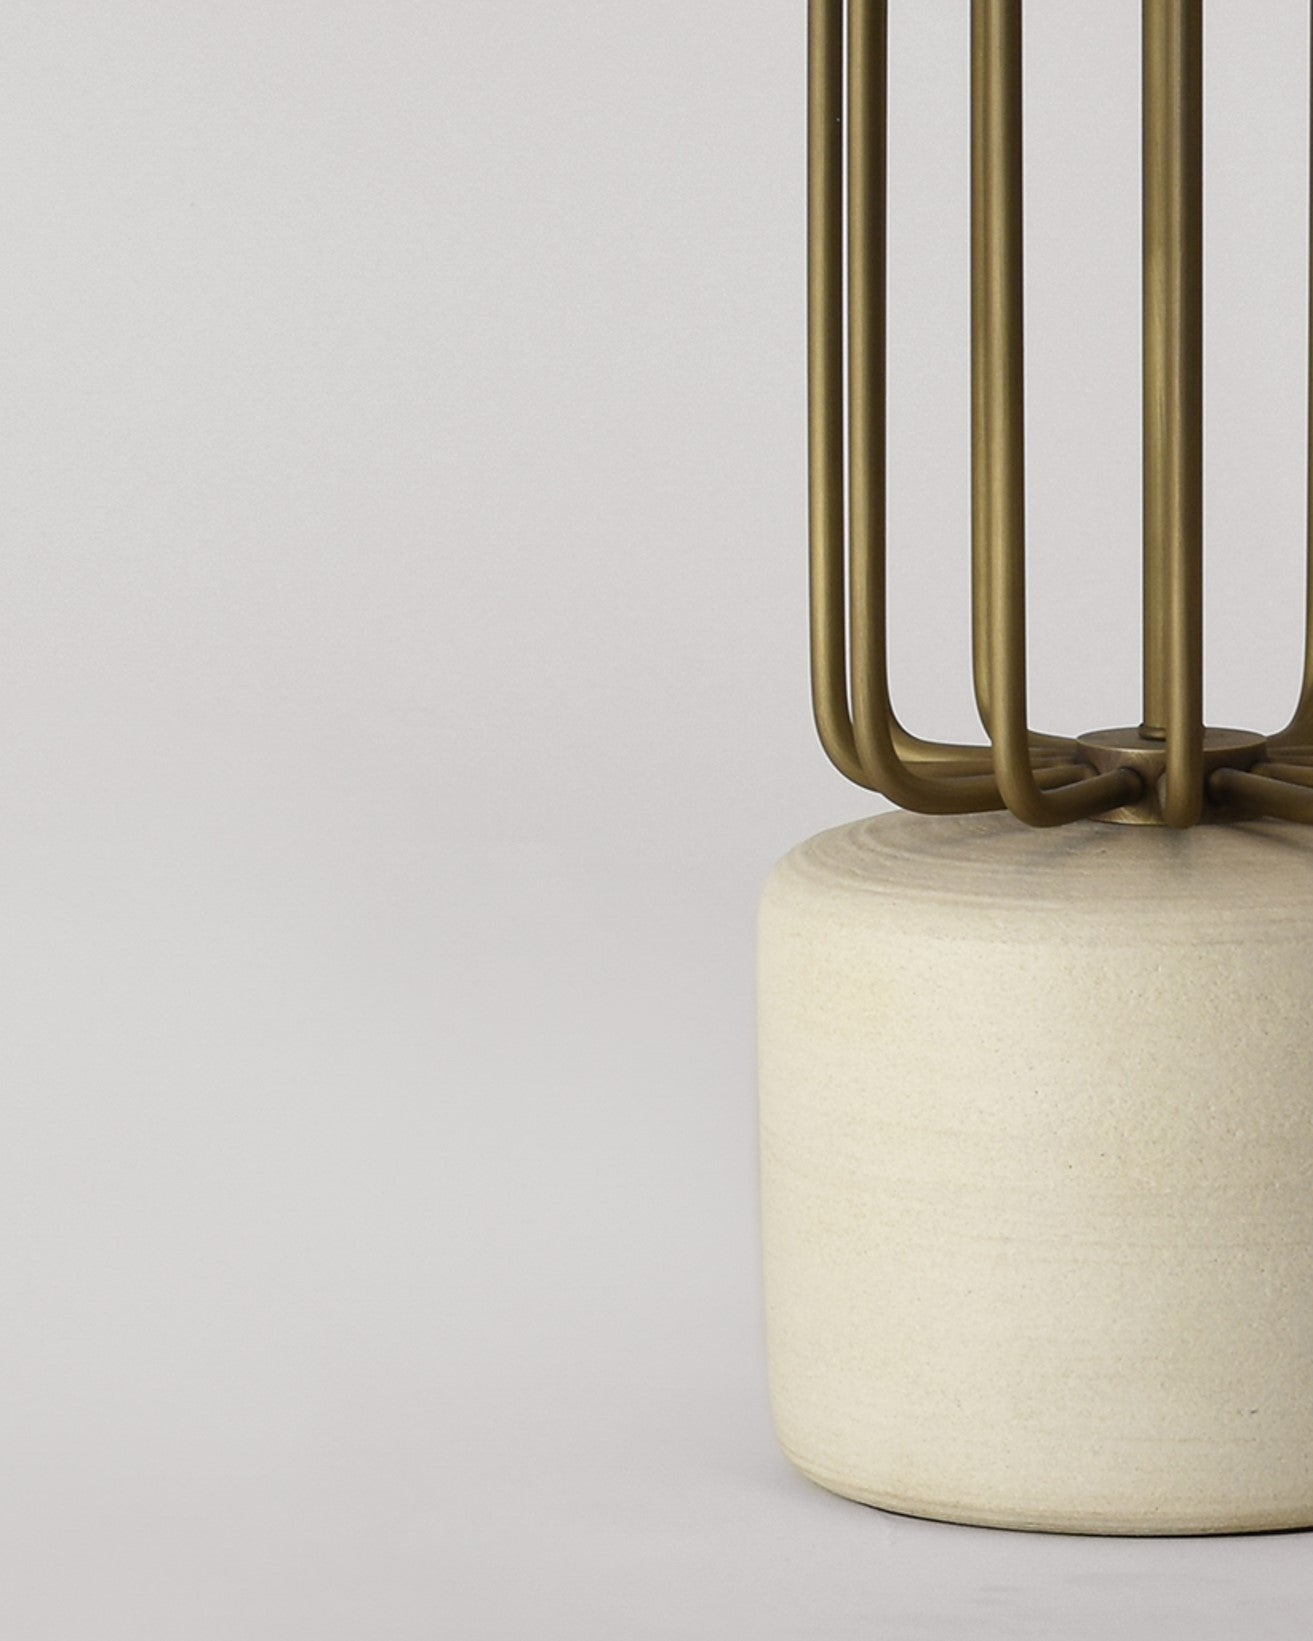 Detail: Cashmere with Light Antique Brass